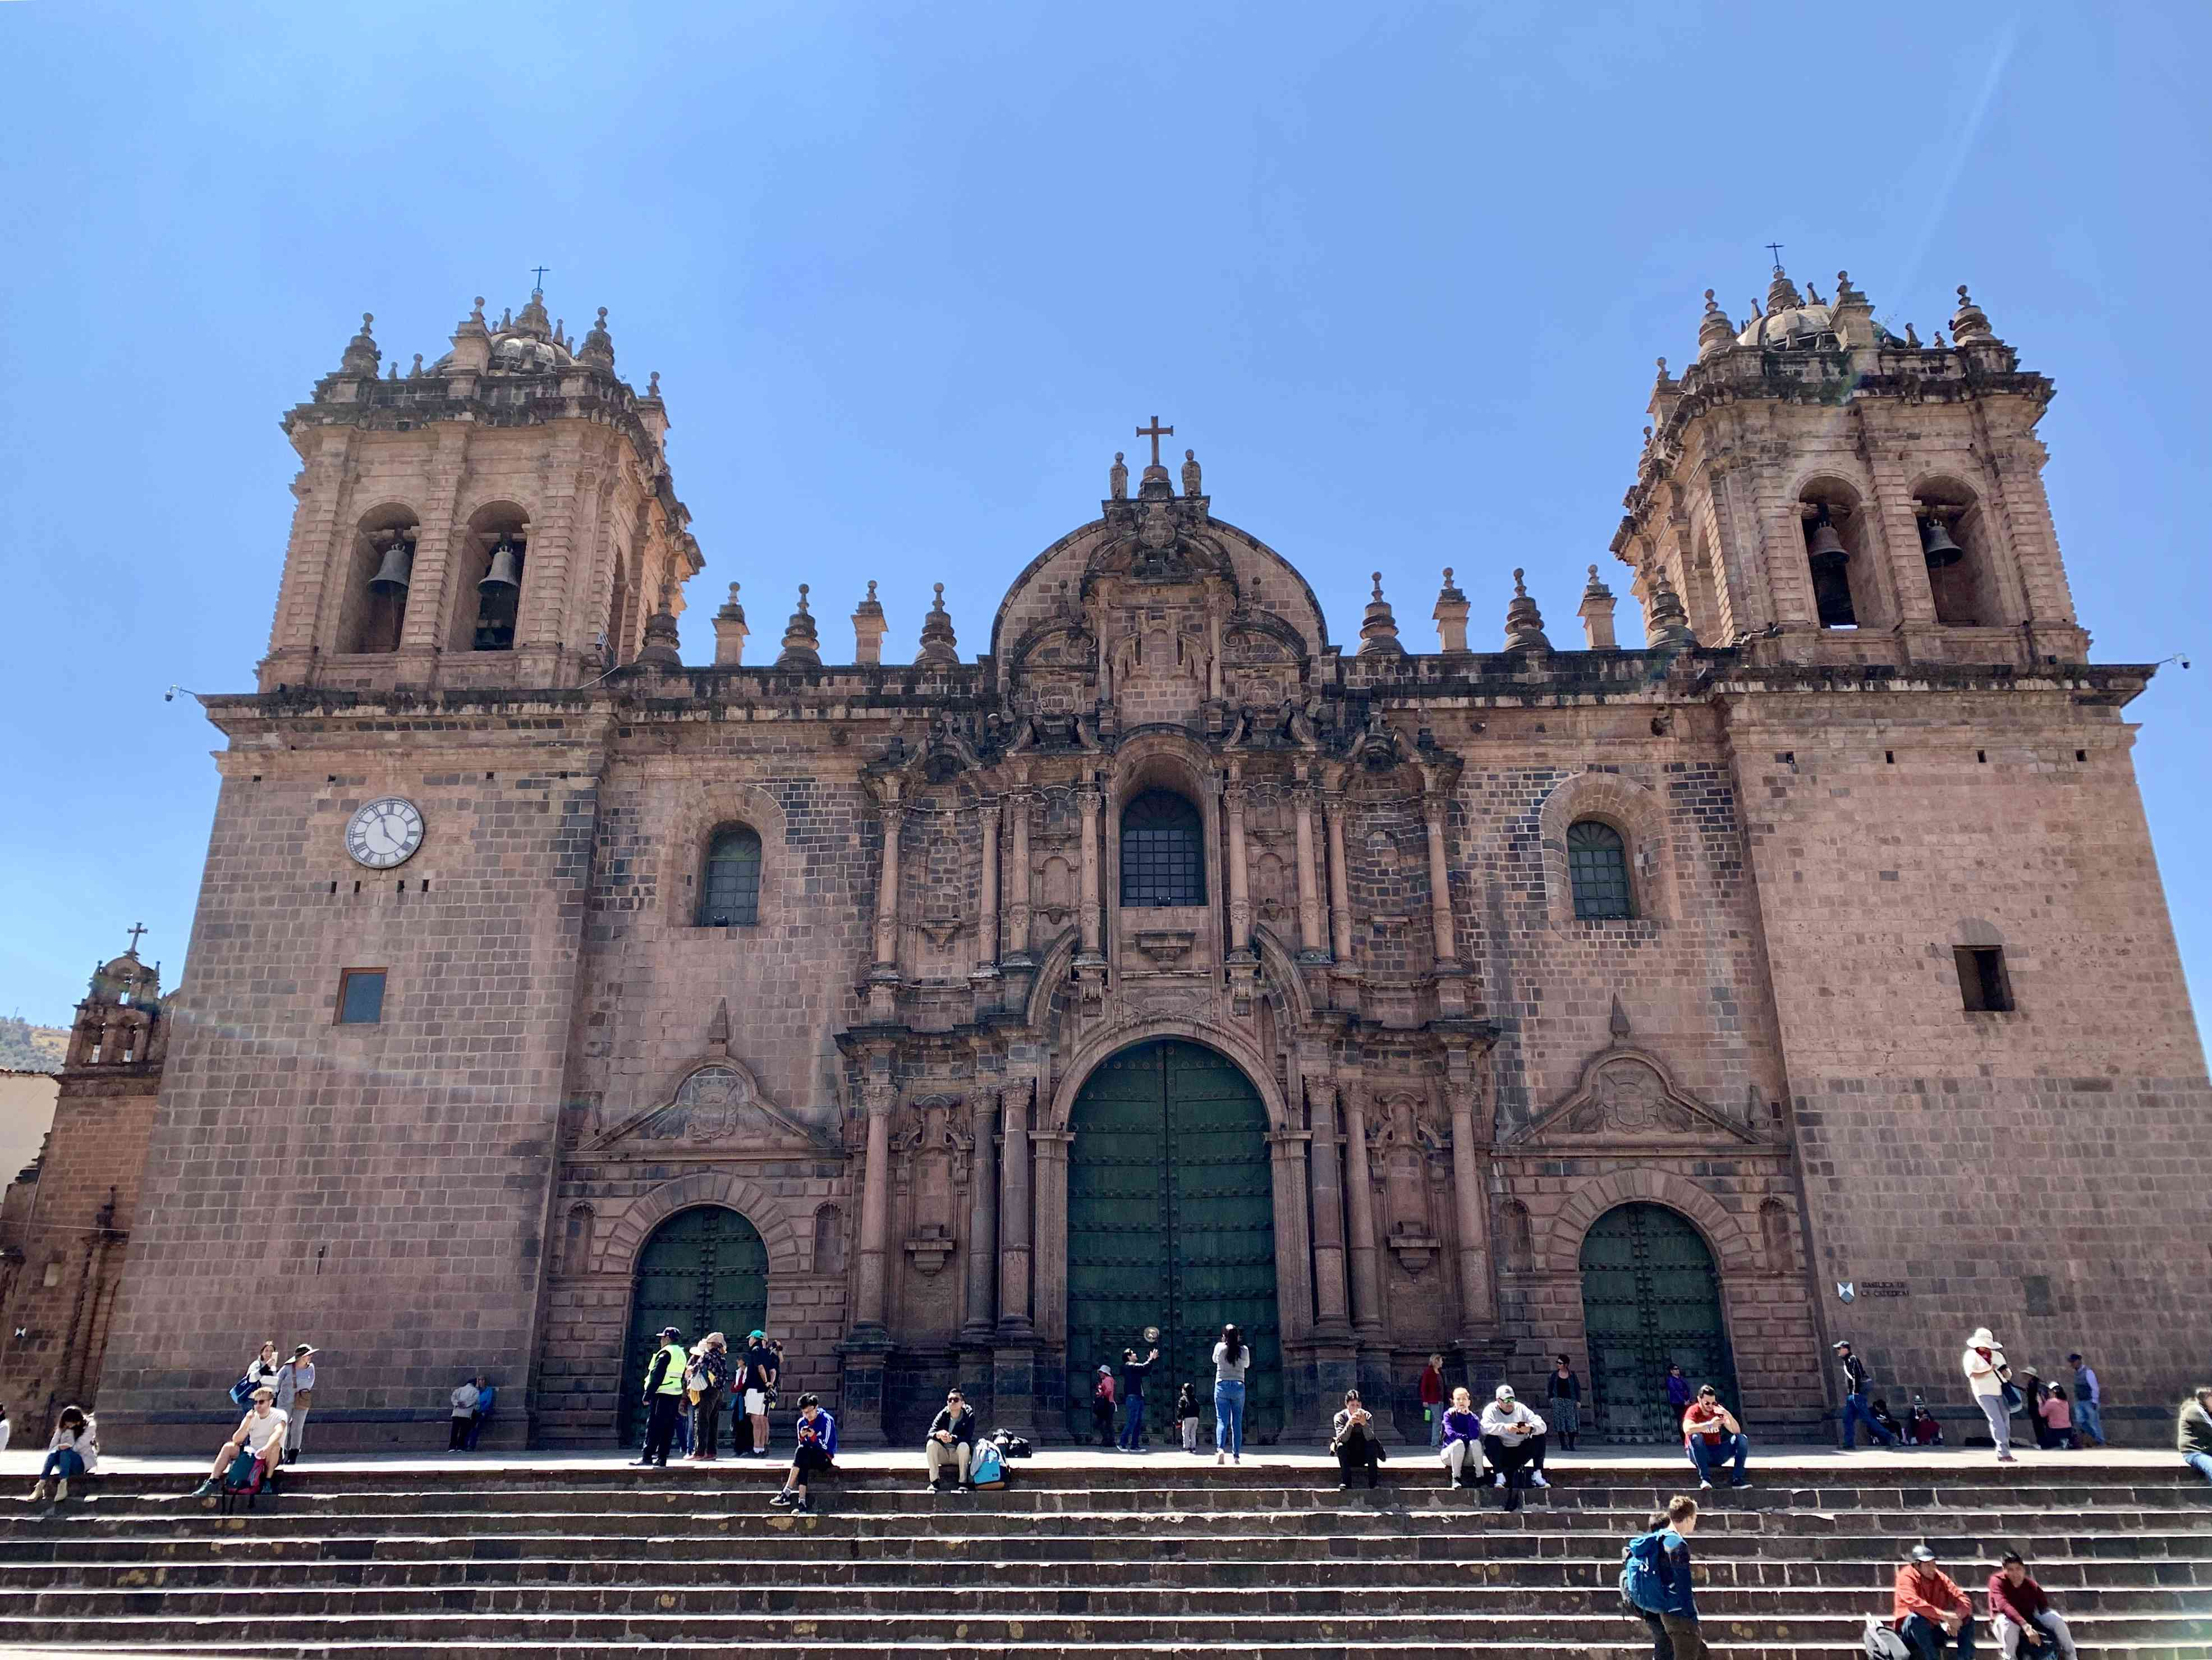 Cusco is located at over 11,000 feet.